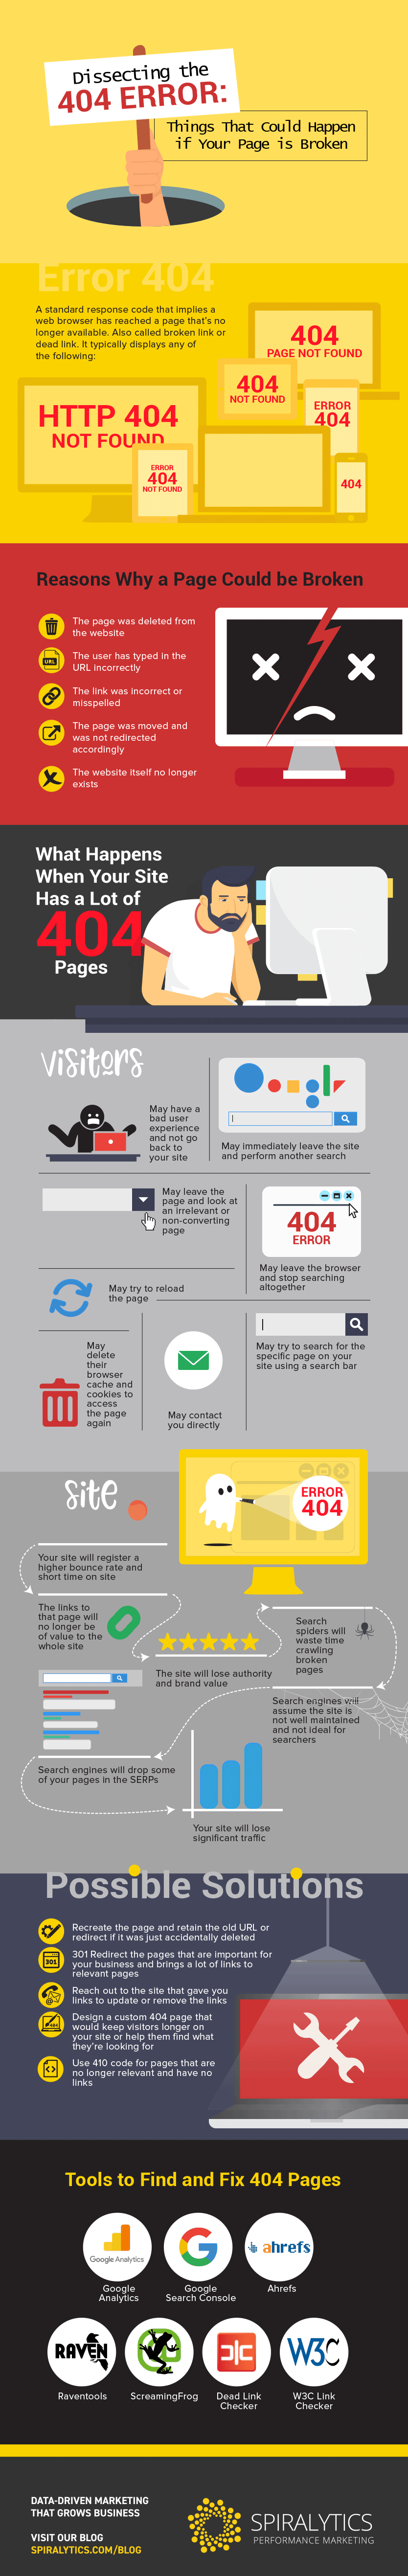 Infographic looks at the potential impacts of 404 errors on website performance